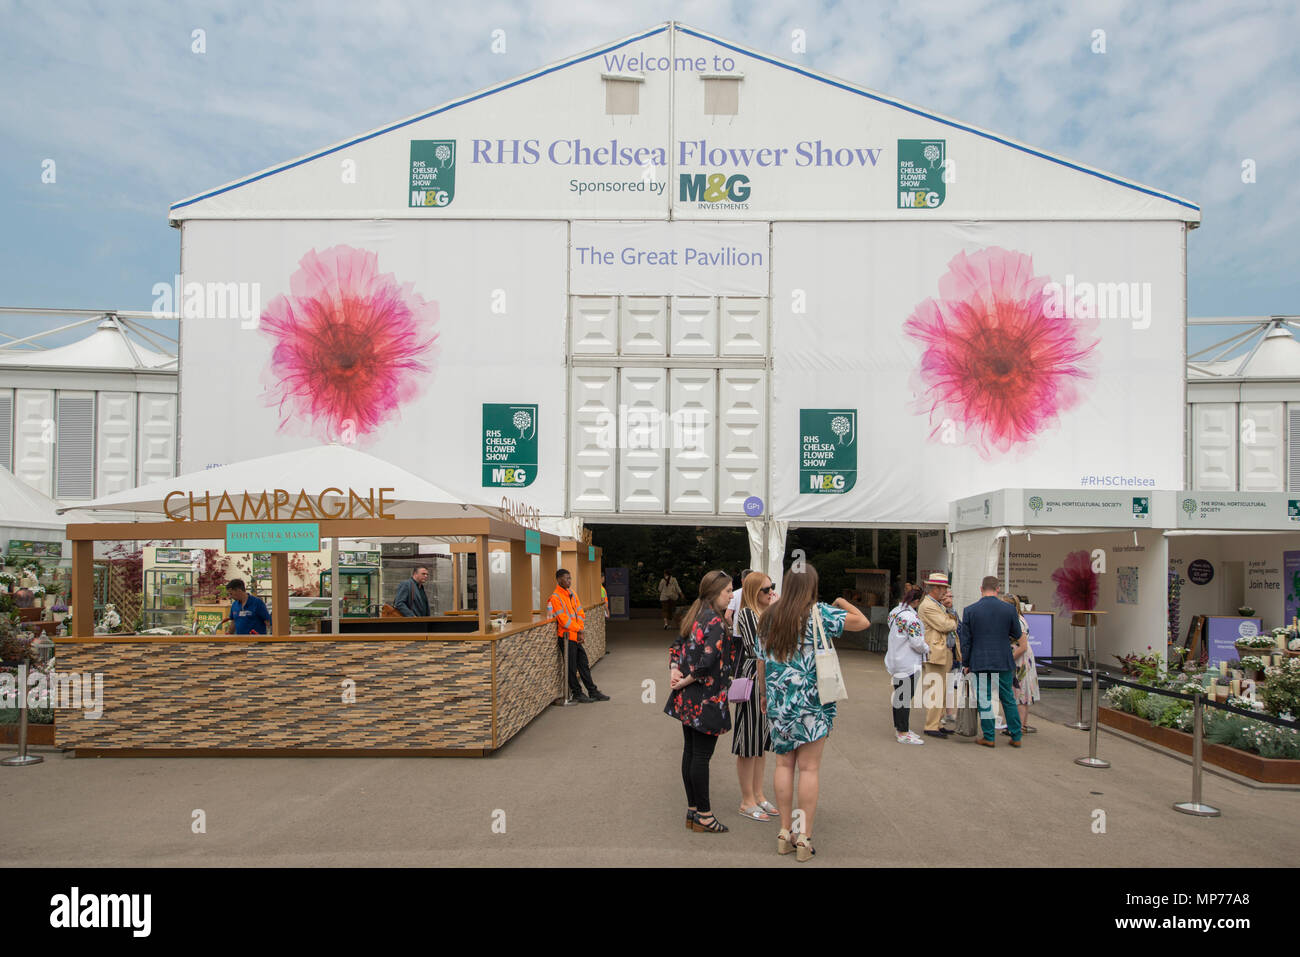 Royal Hospital Chelsea, London, UK. 21 May, 2018. Press day for the RHS Chelsea Flower Show 2018. Photo: Entrance to The Great Pavilion. Credit: Malcolm Park/Alamy Live News. - Stock Image